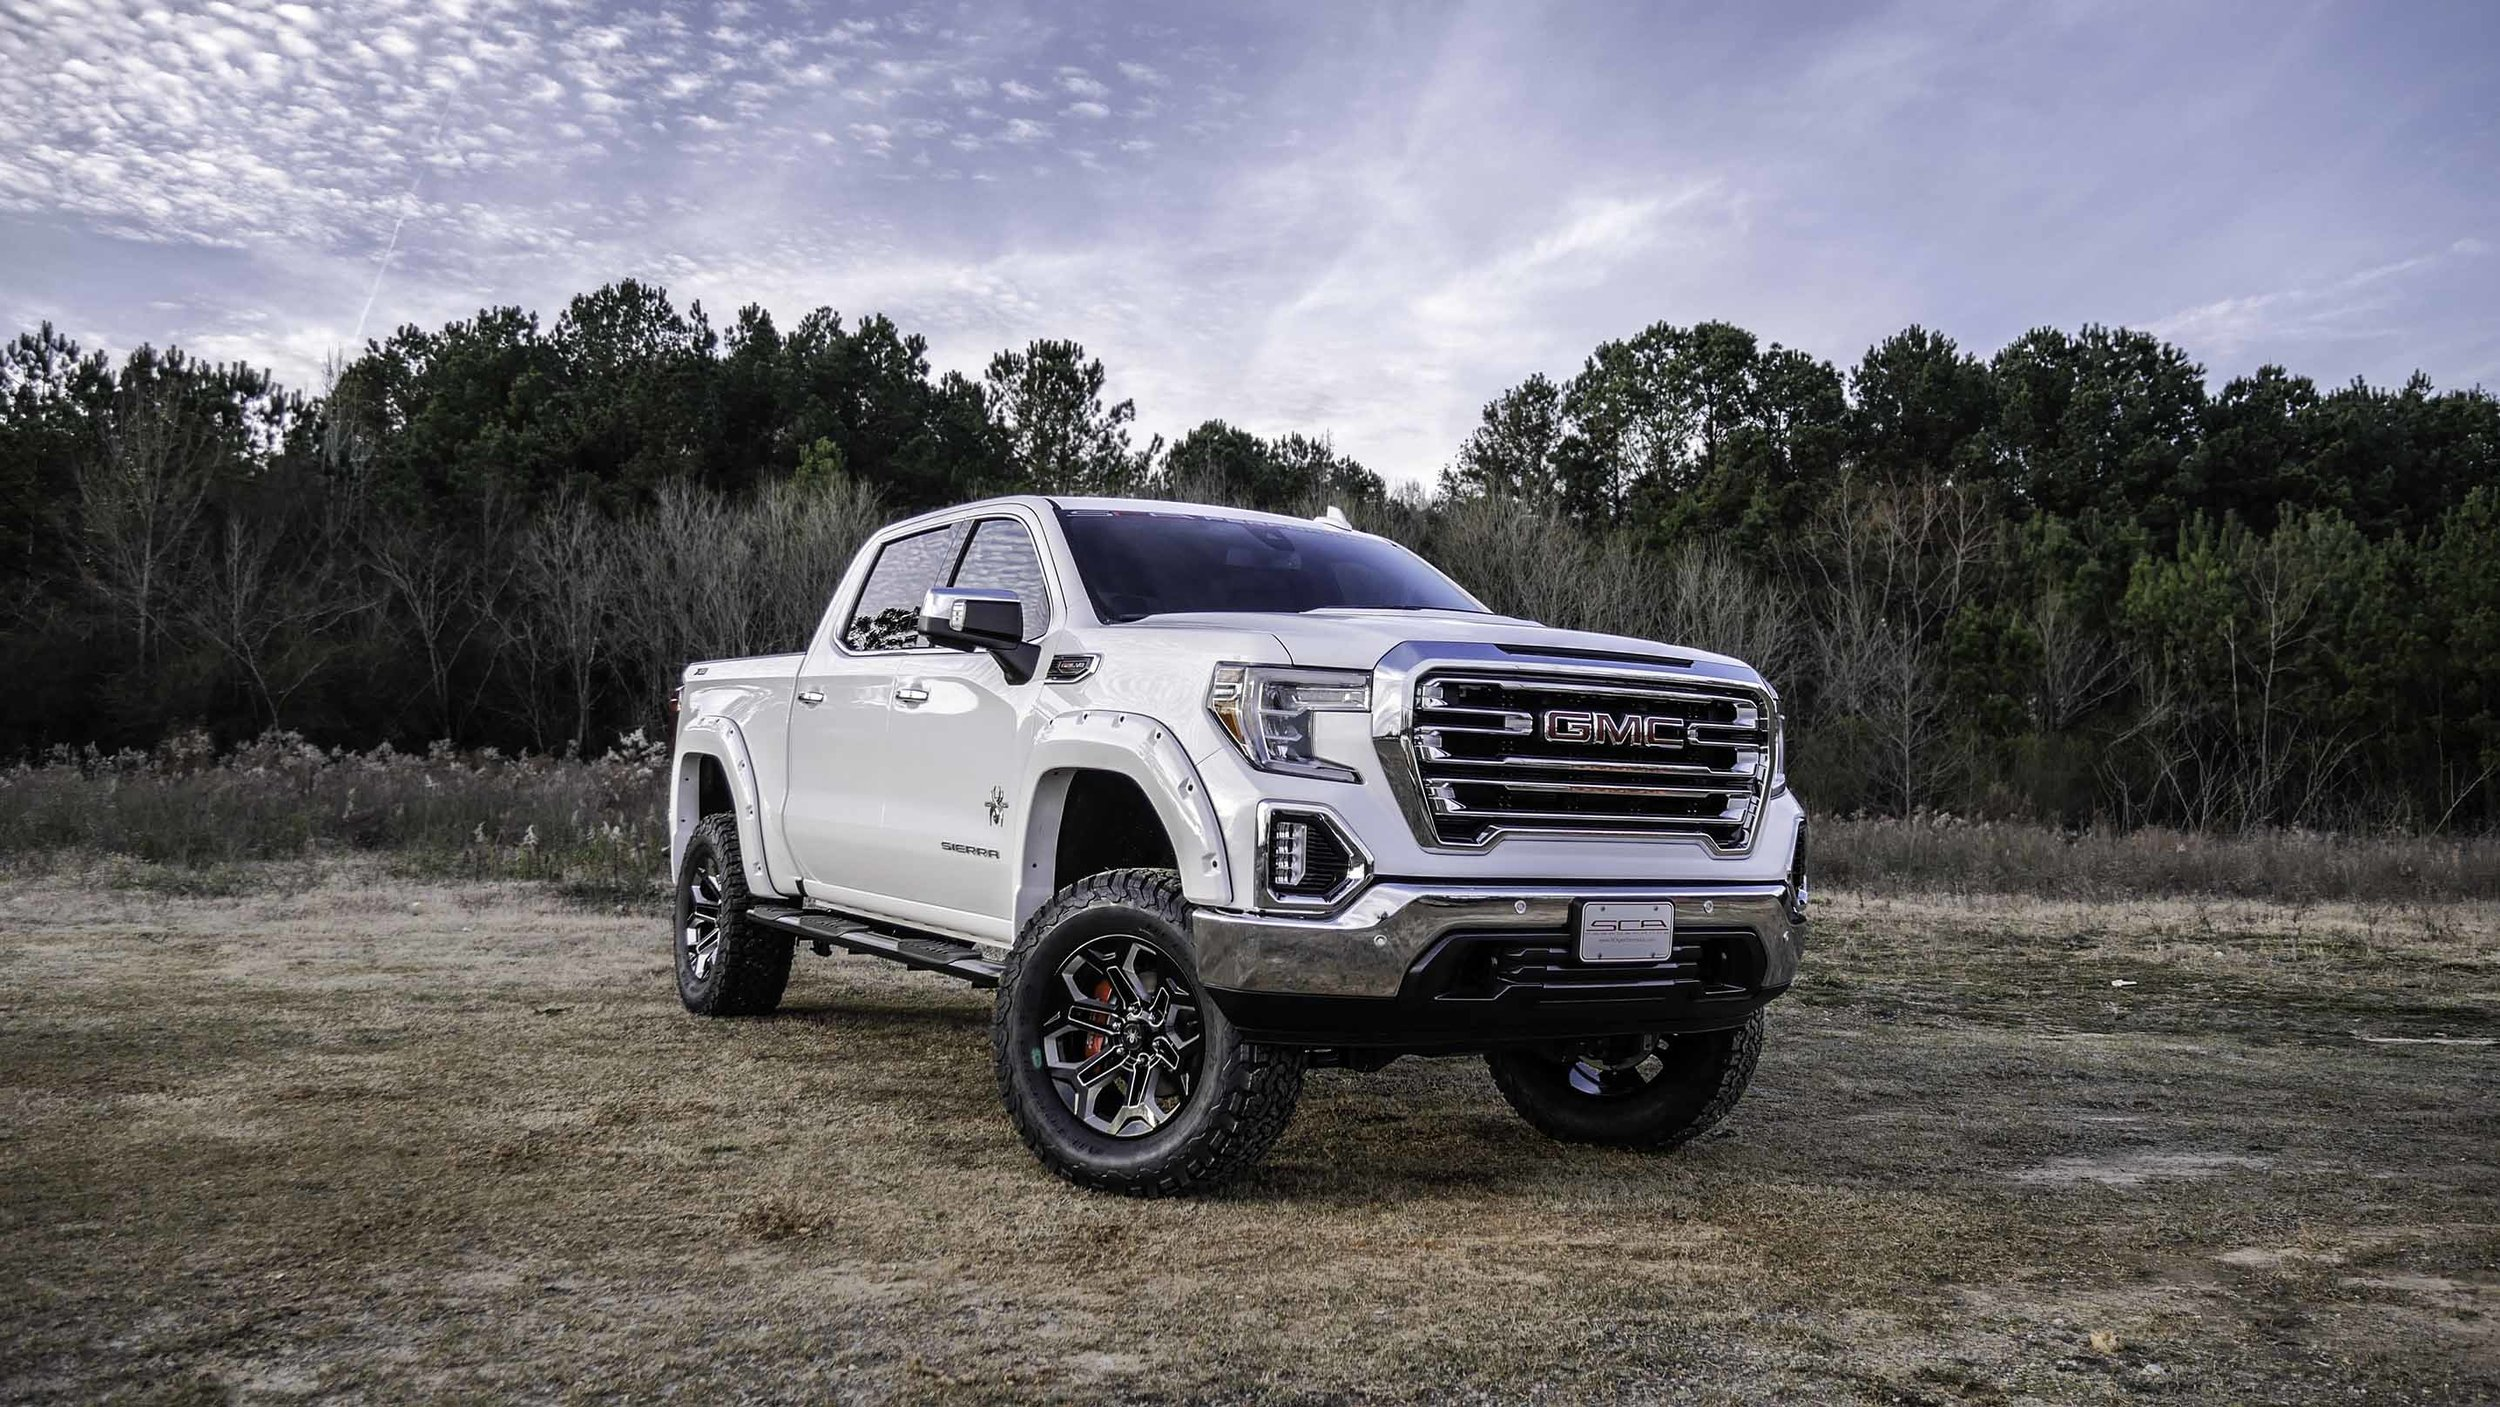 2019 GMC Sierra Black Widow White Front Qtr Small.jpg